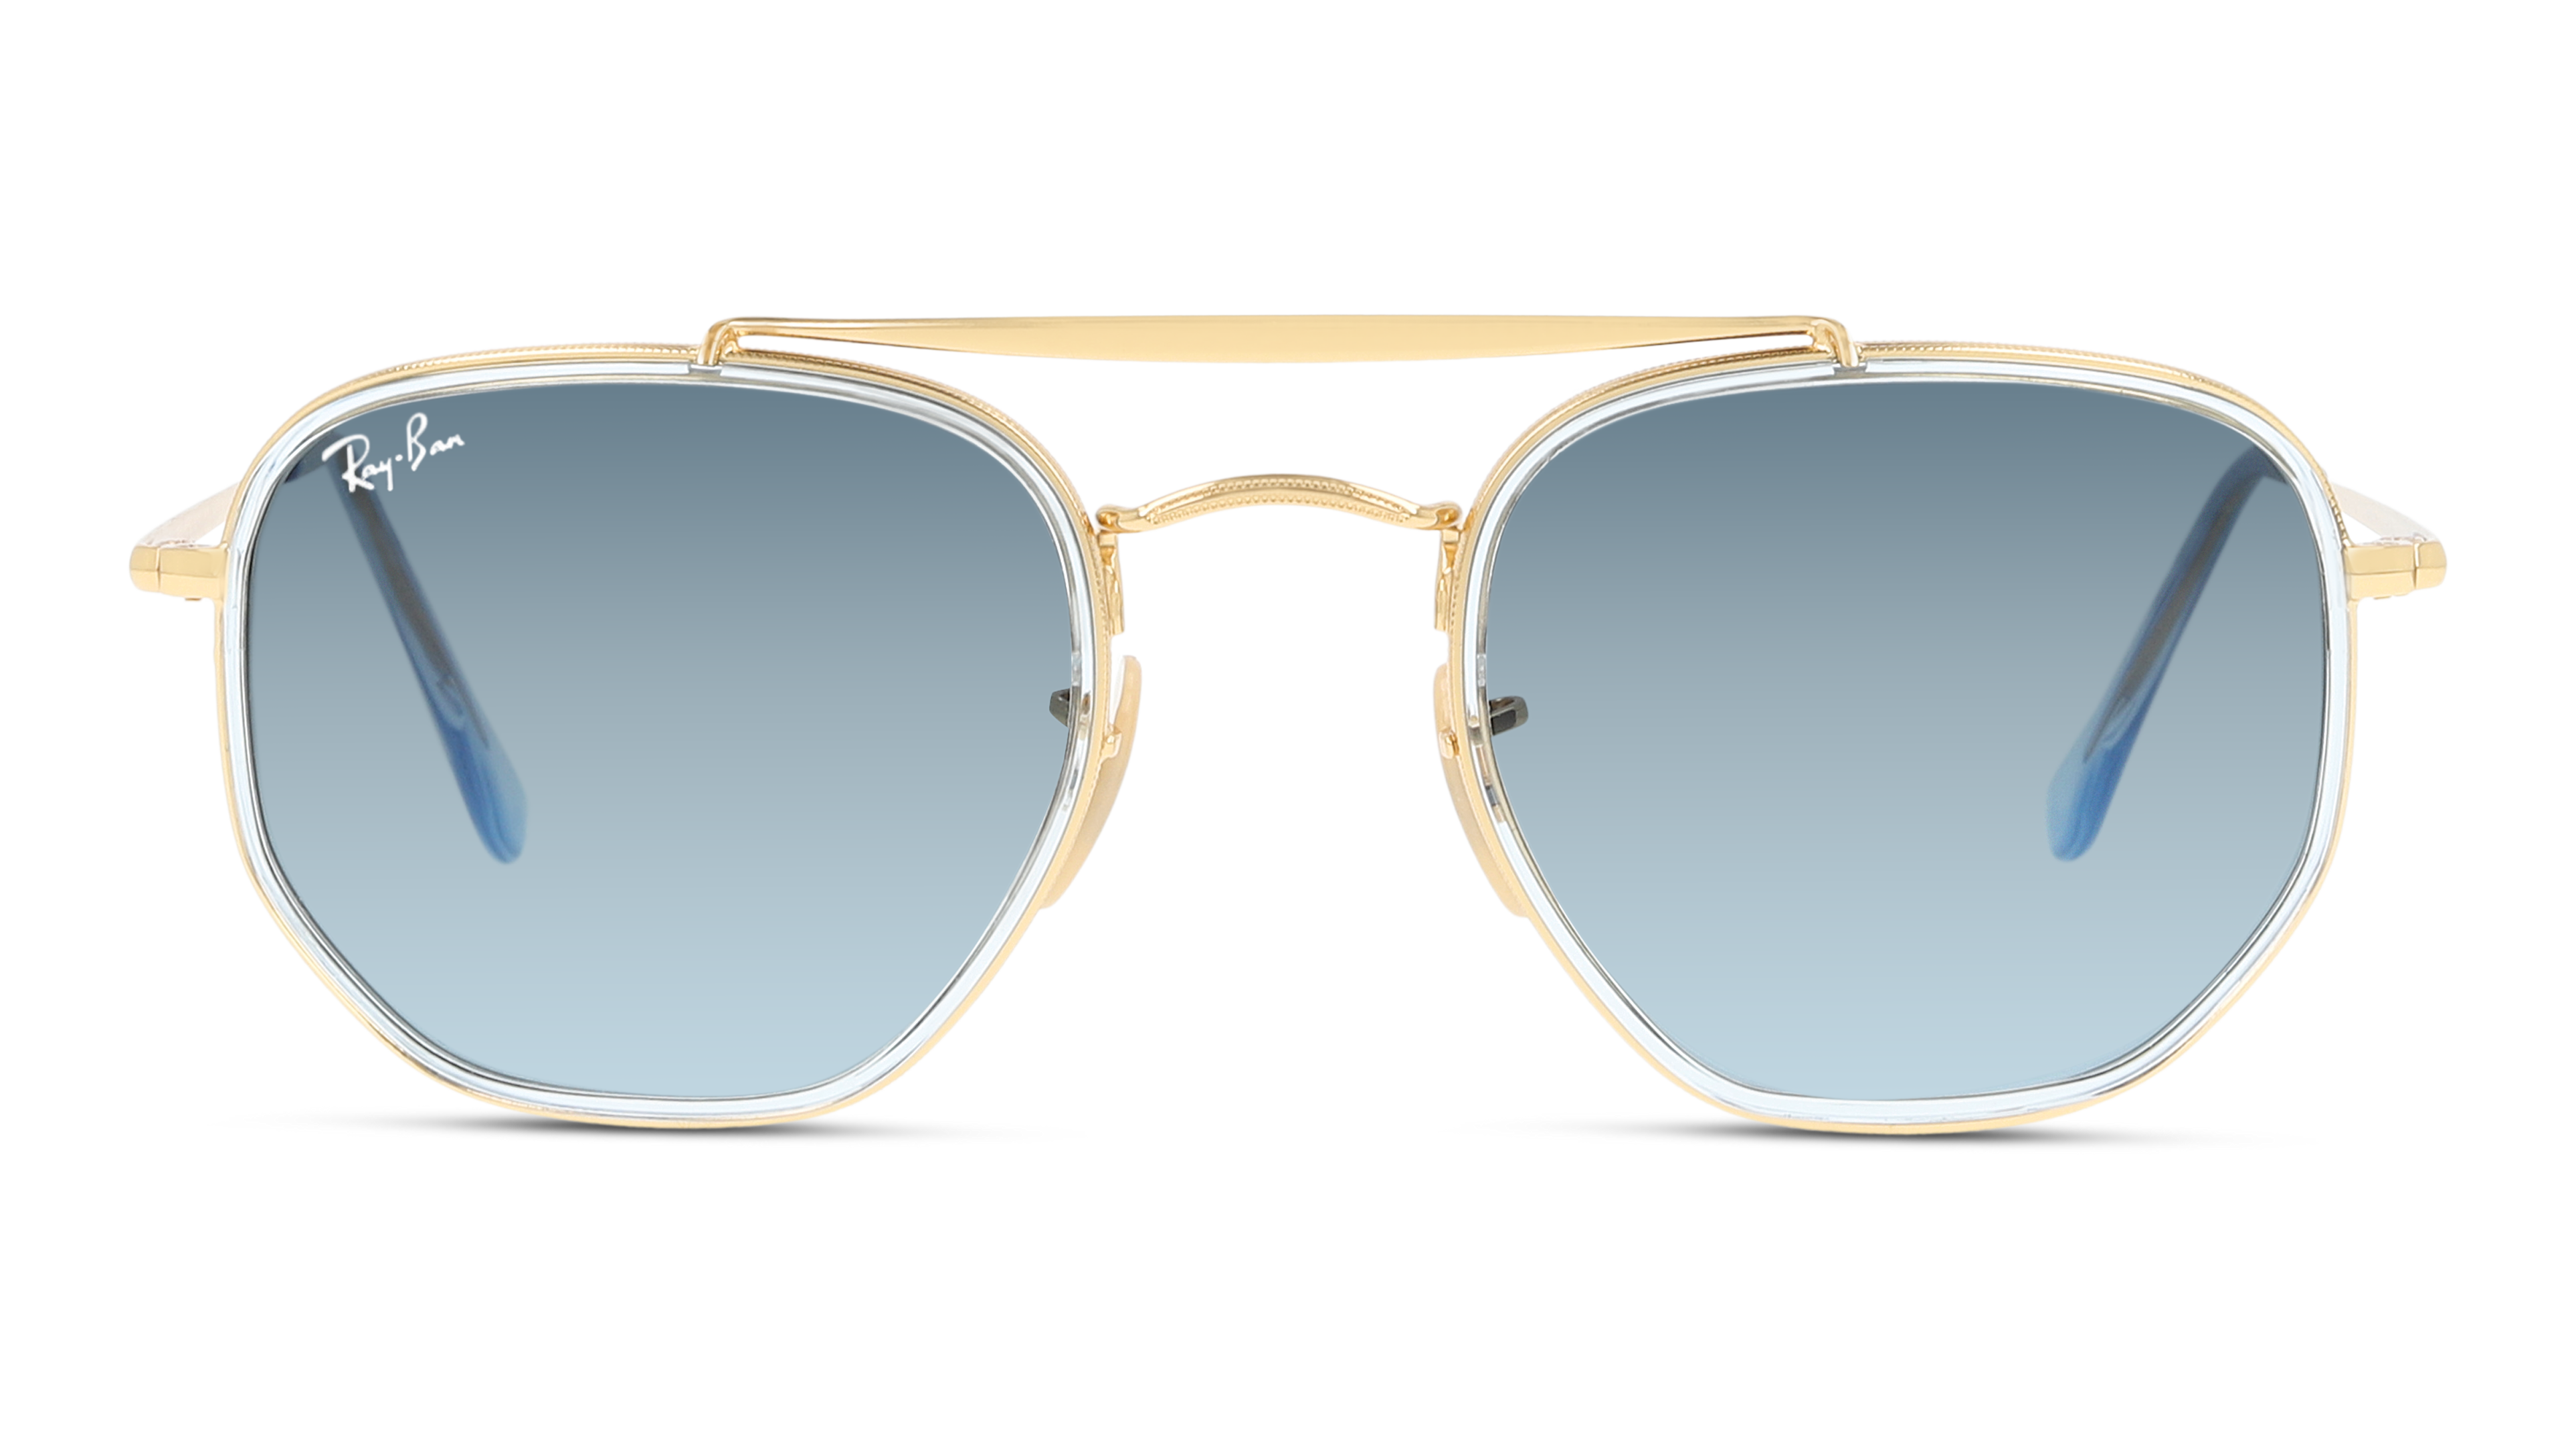 Front Ray-Ban 0RB3648M/91233M/5223/145 Guld